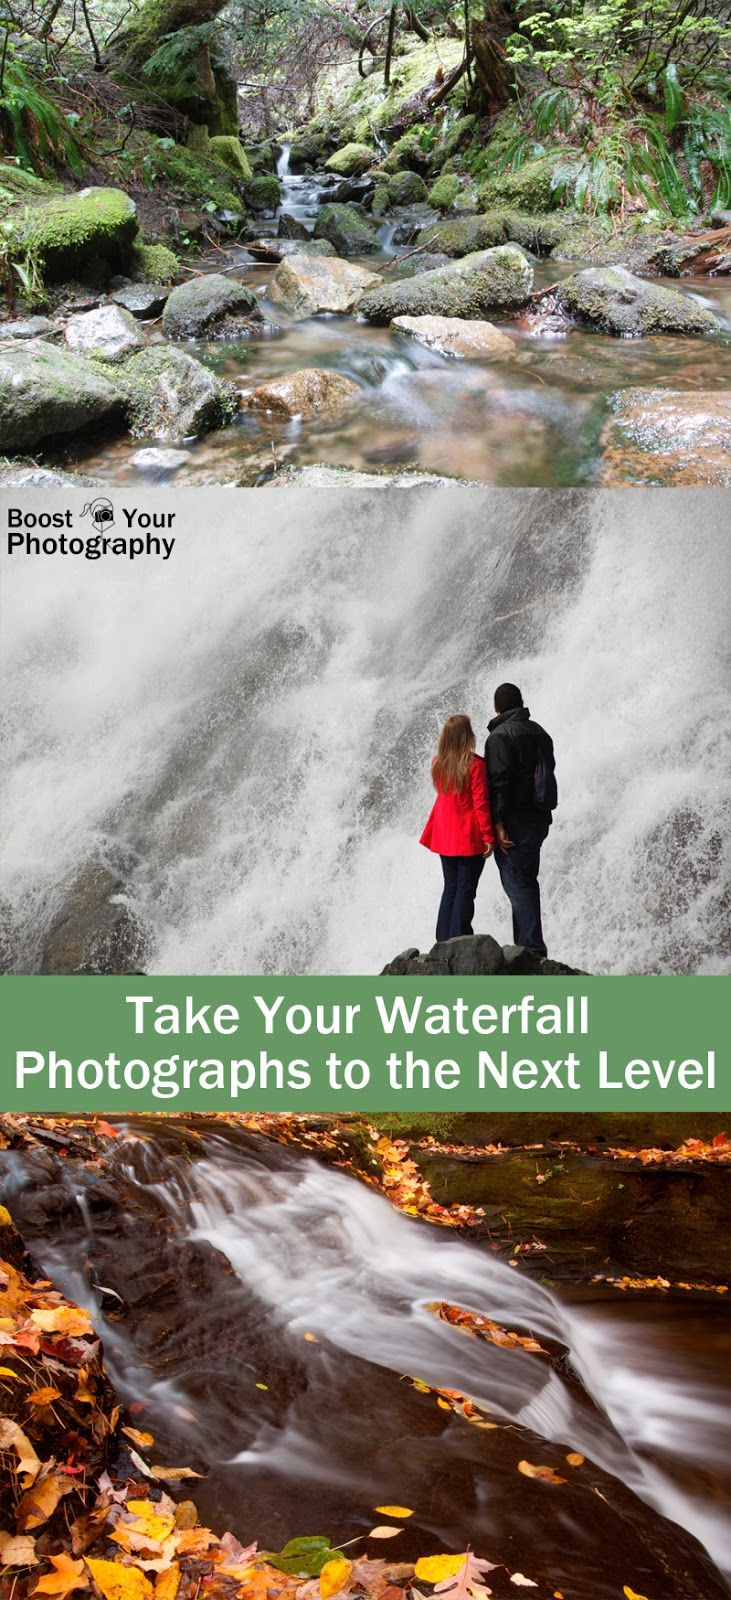 Take Your Waterfall Photographs to the Next Level | Boost Your Photography #waterfalls #photography